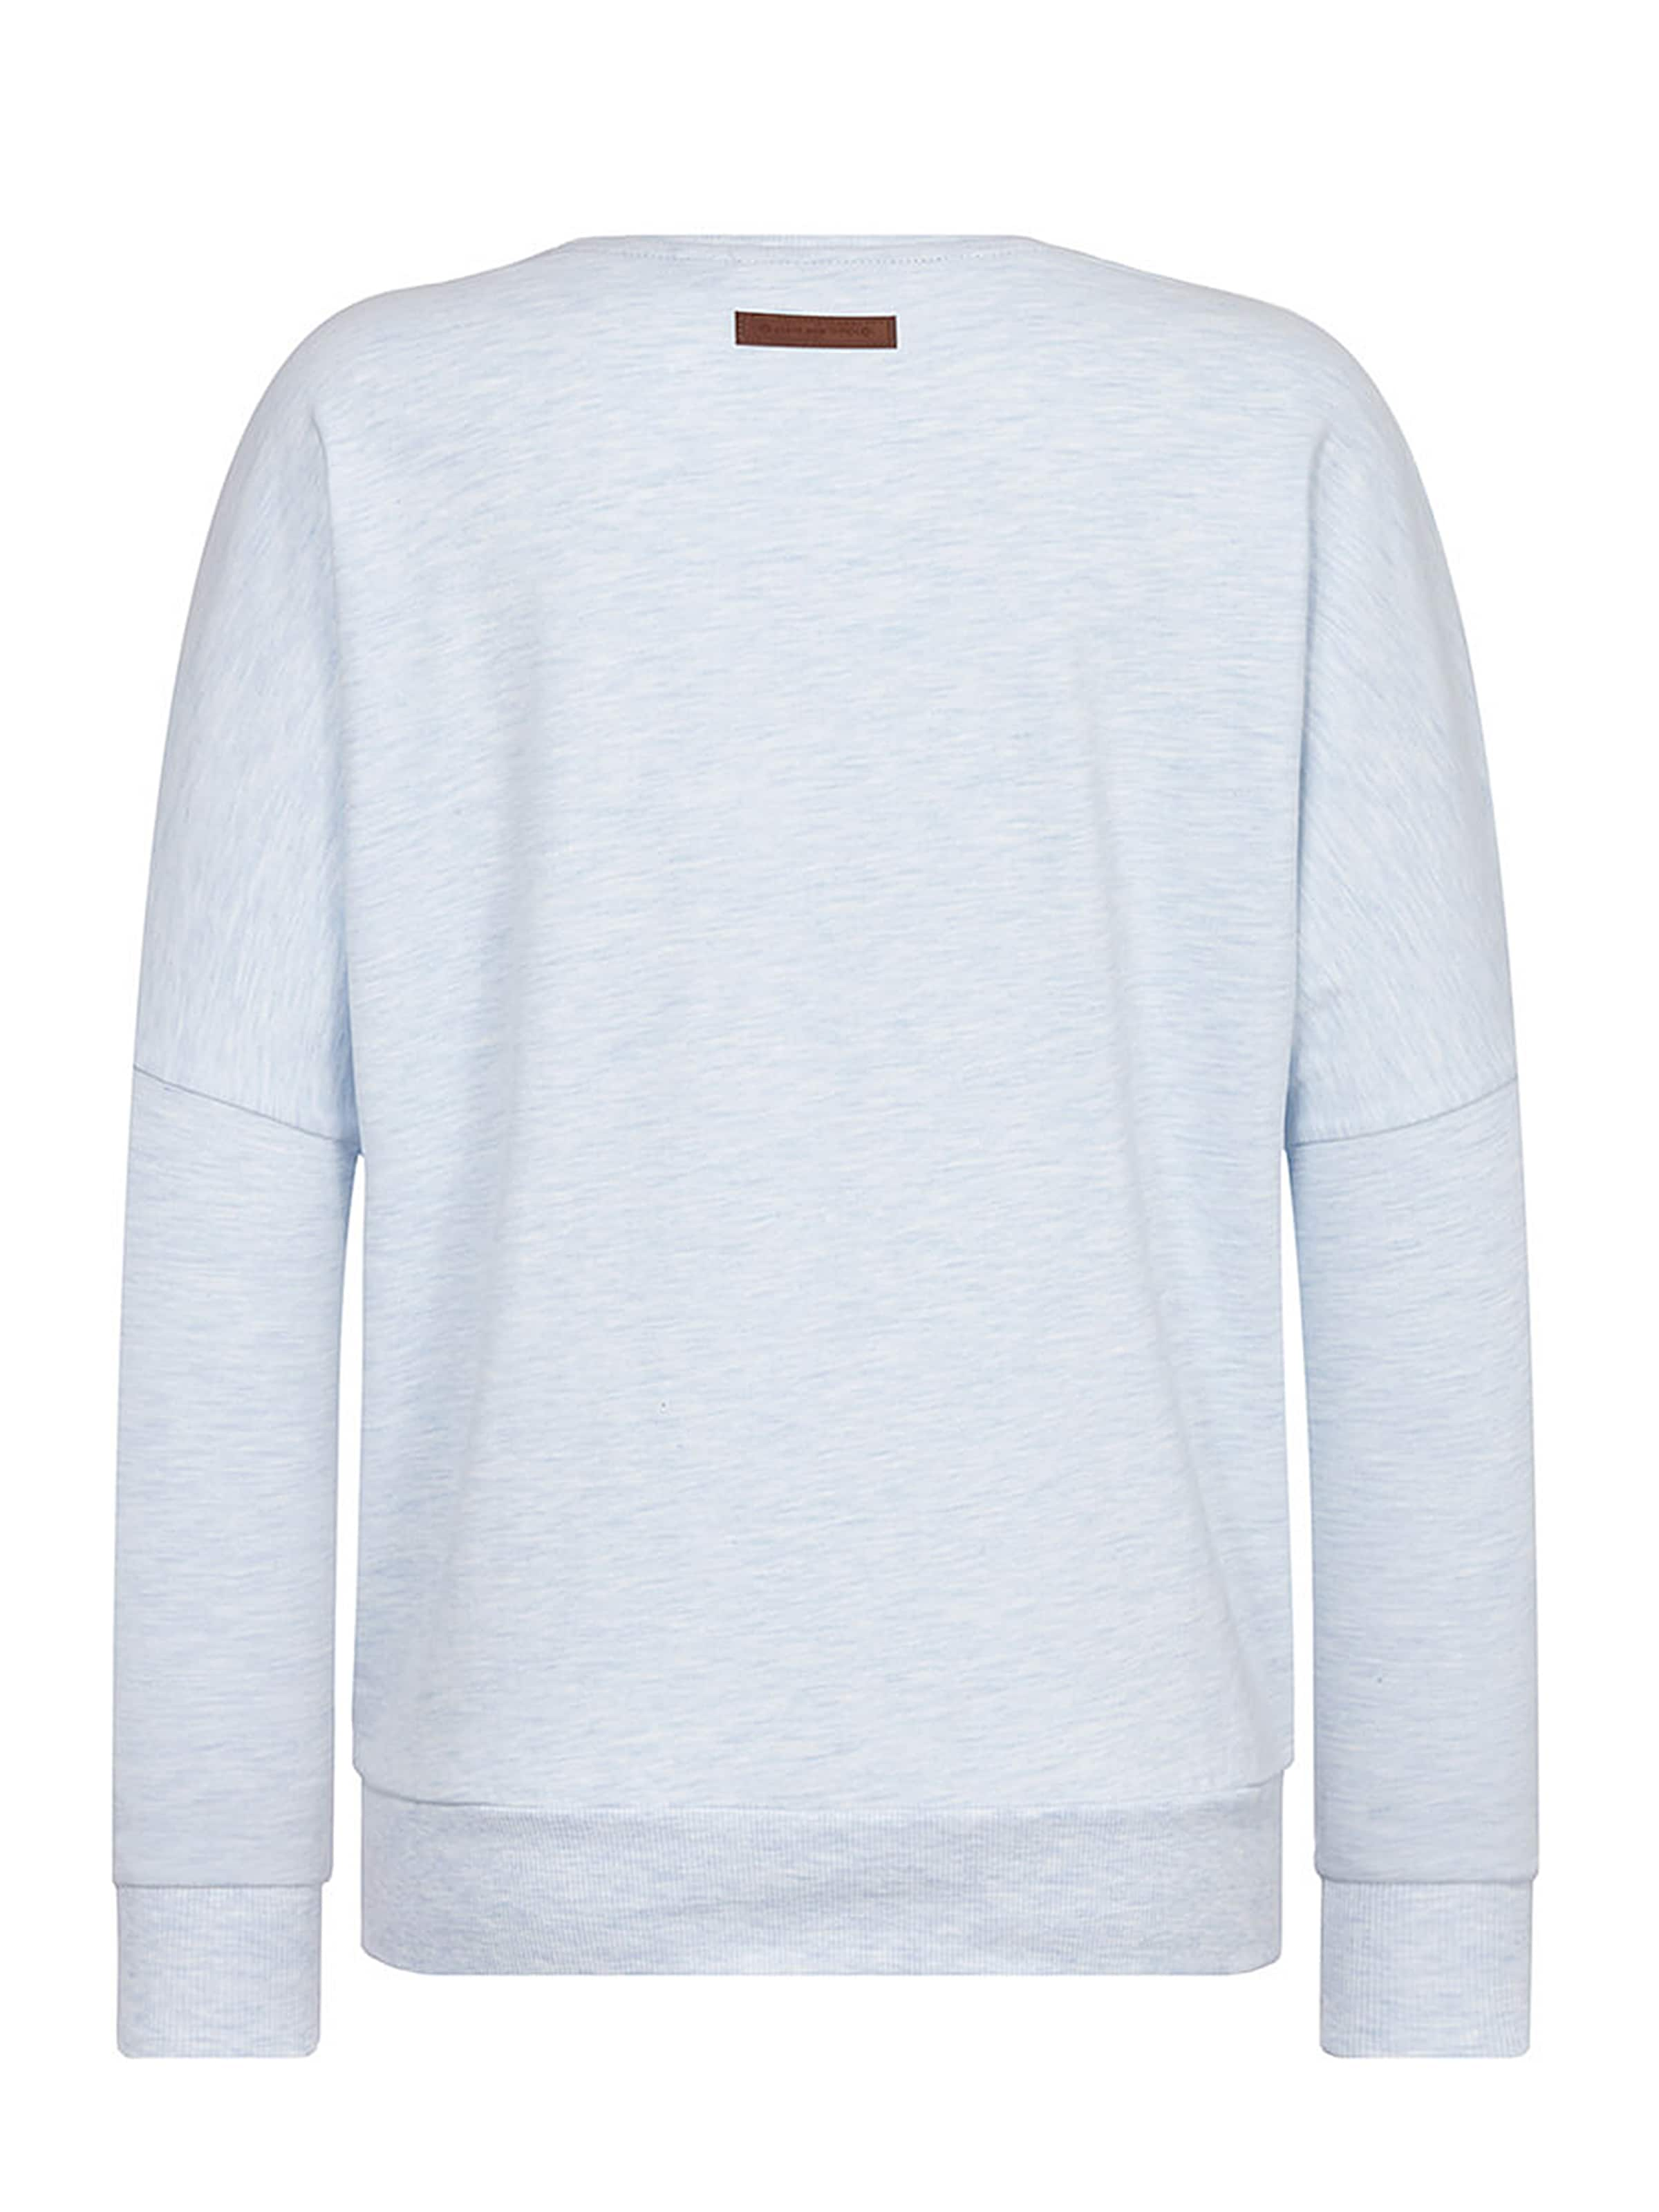 En Bleu Naketano shirt Naketano shirt Sweat Sweat 2bDH9YEIeW